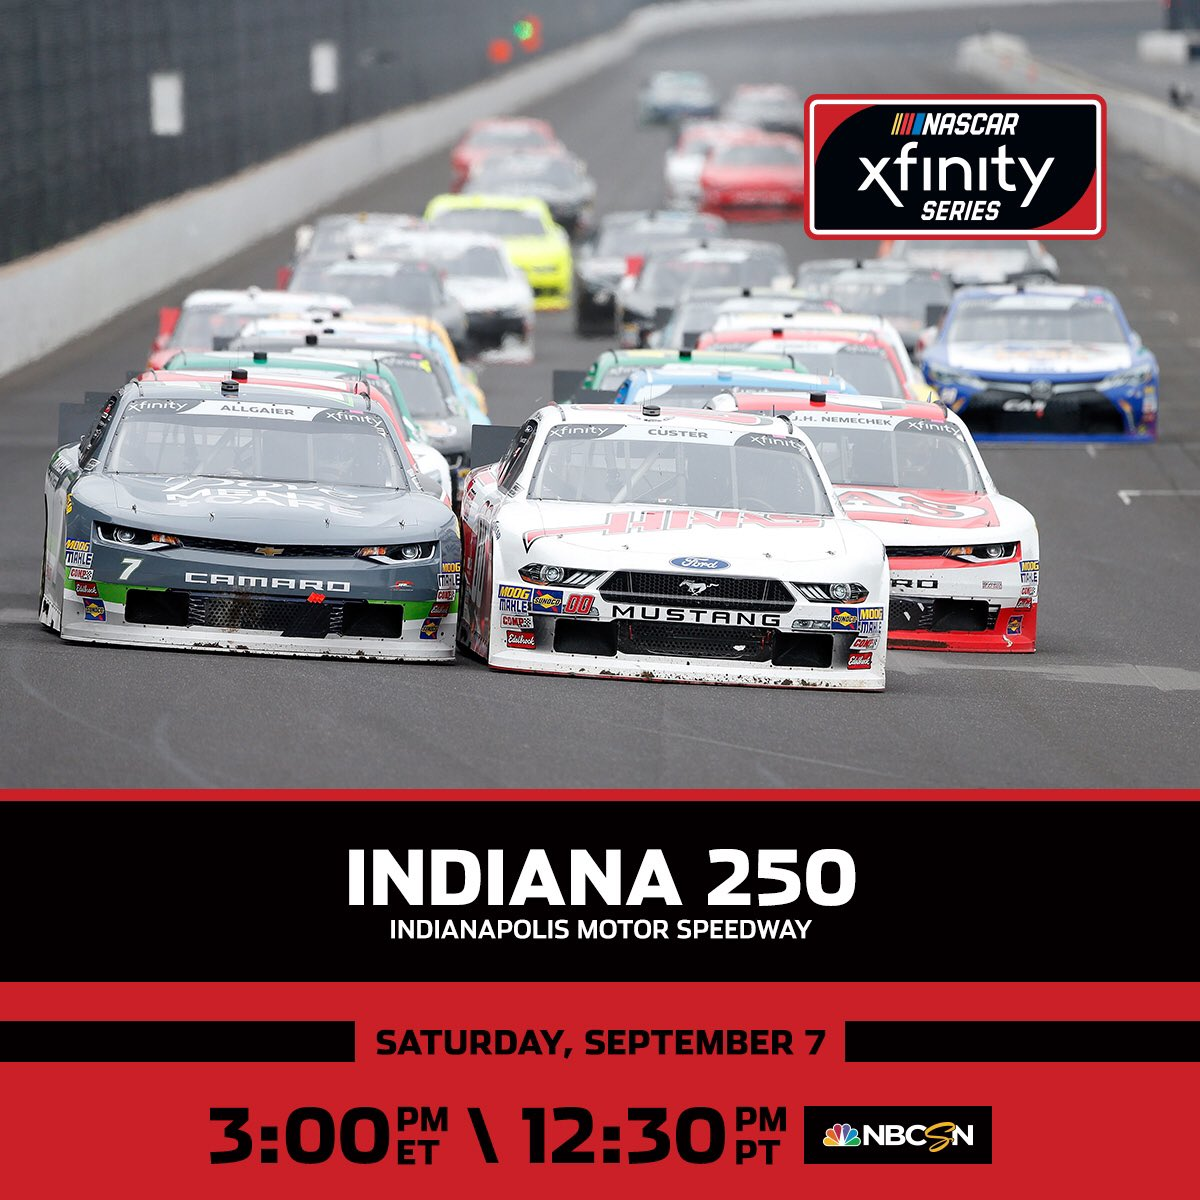 The stars of the @NASCAR_Xfinity Series continue their race to the playoffs! Only four spots remain with two races to go. Catch the #Indiana250 action today on NBCSN!